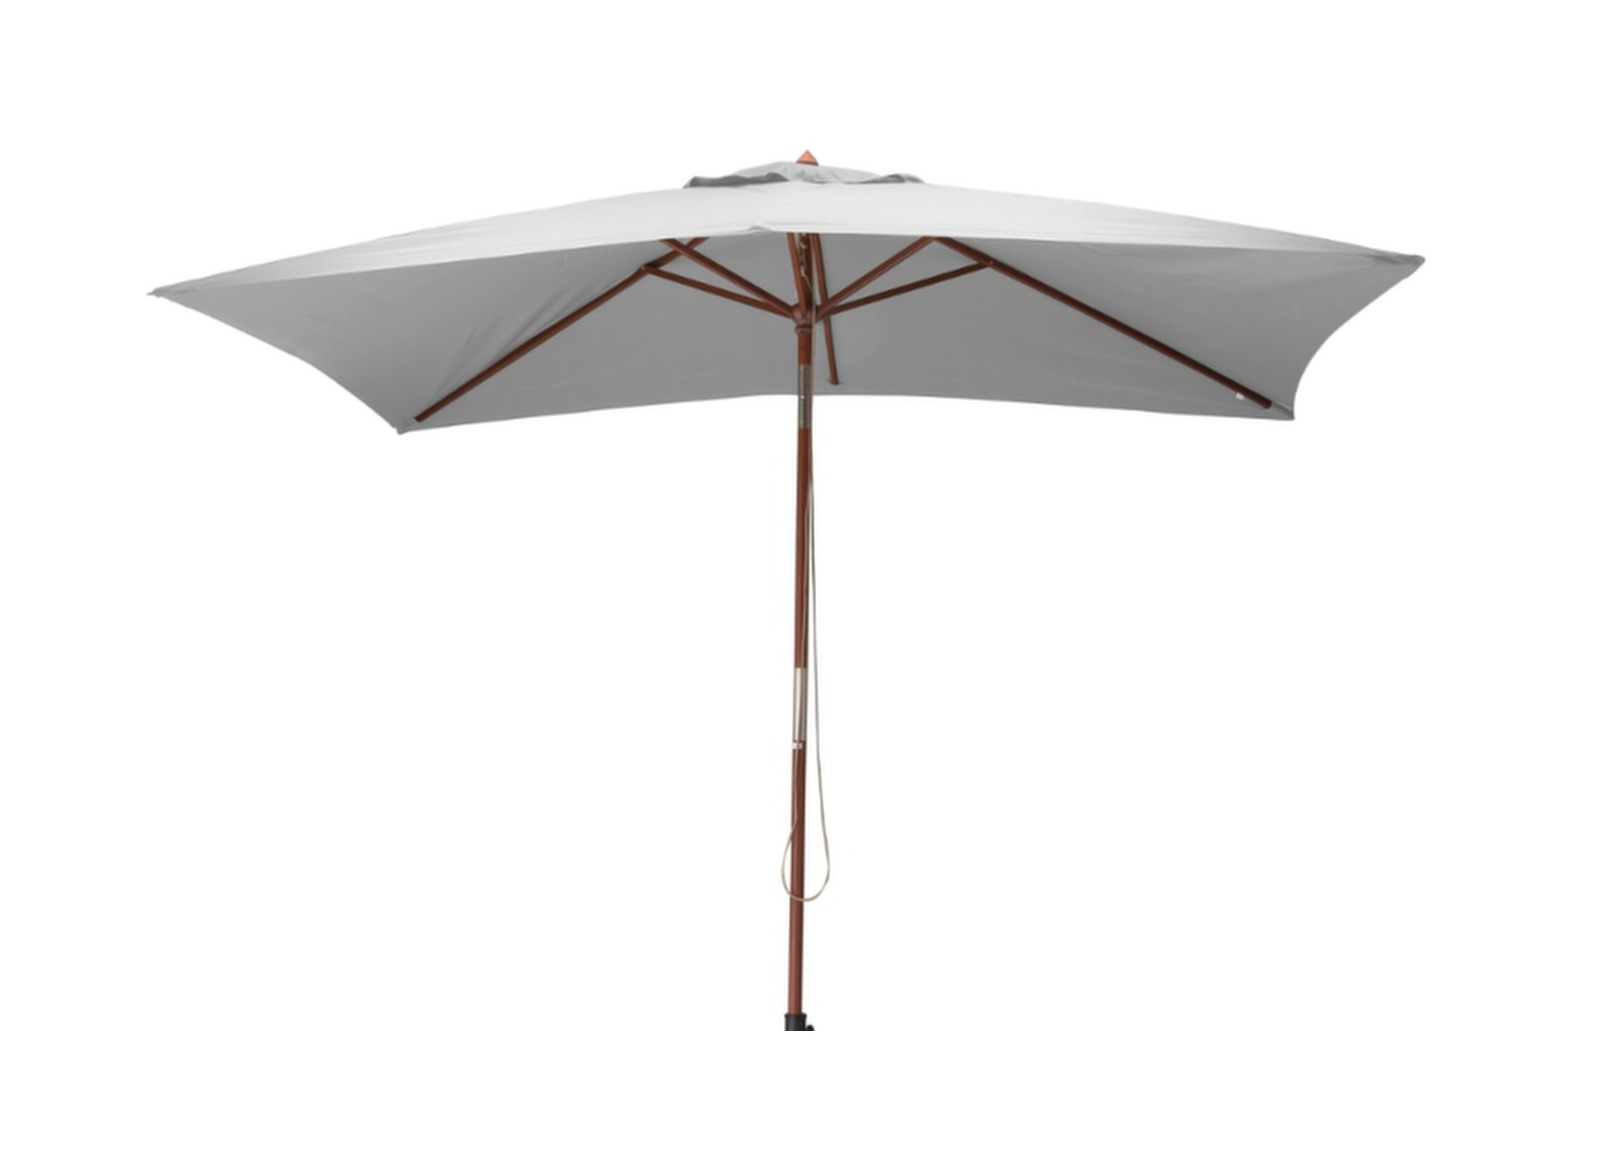 parasol bois rectangulaire 3x2m mobilier de jardin proloisirs. Black Bedroom Furniture Sets. Home Design Ideas